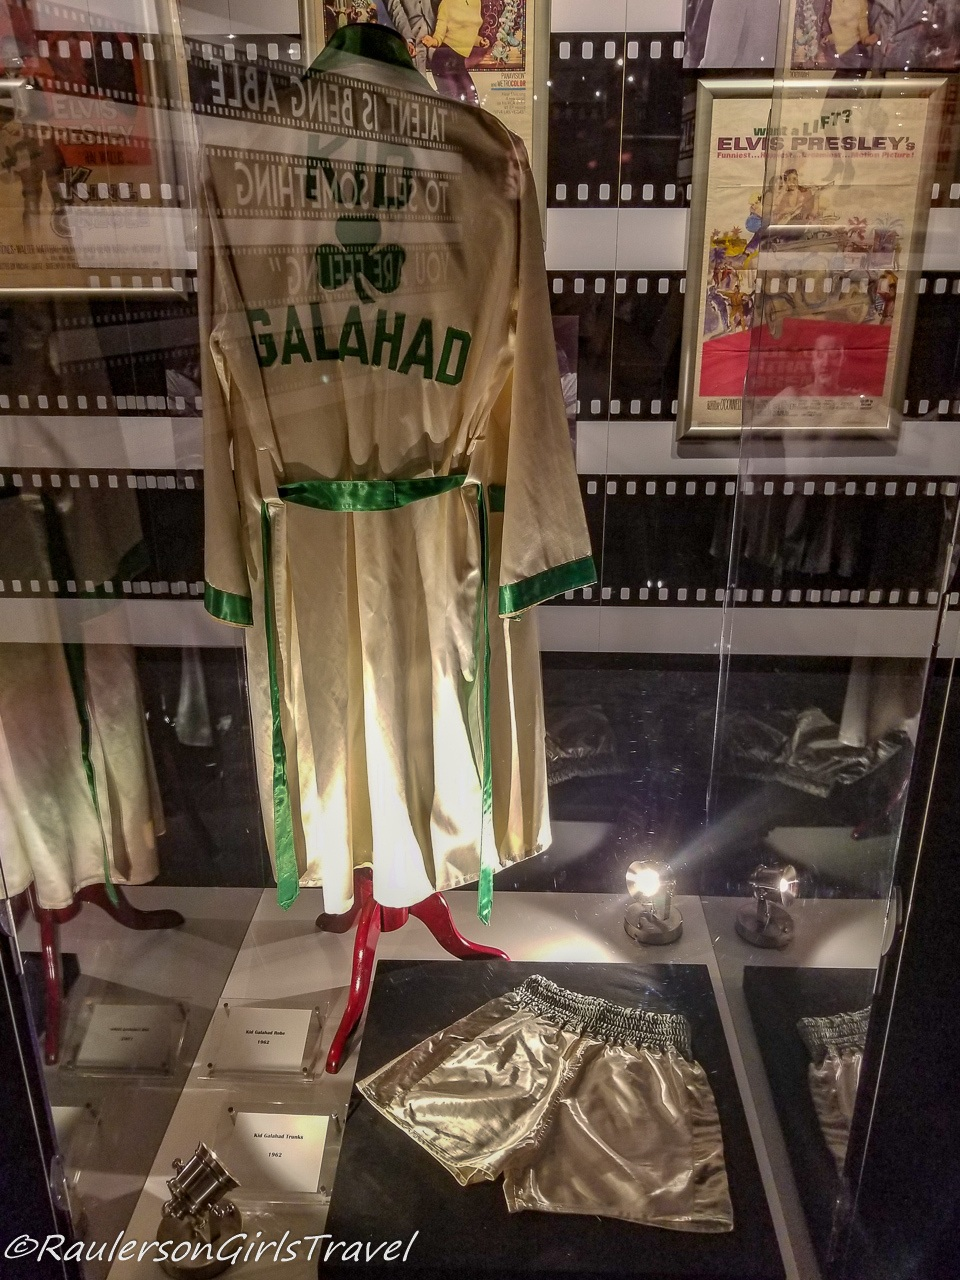 Elvis Presley's Robe and Shorts from Kid Galahad Movie